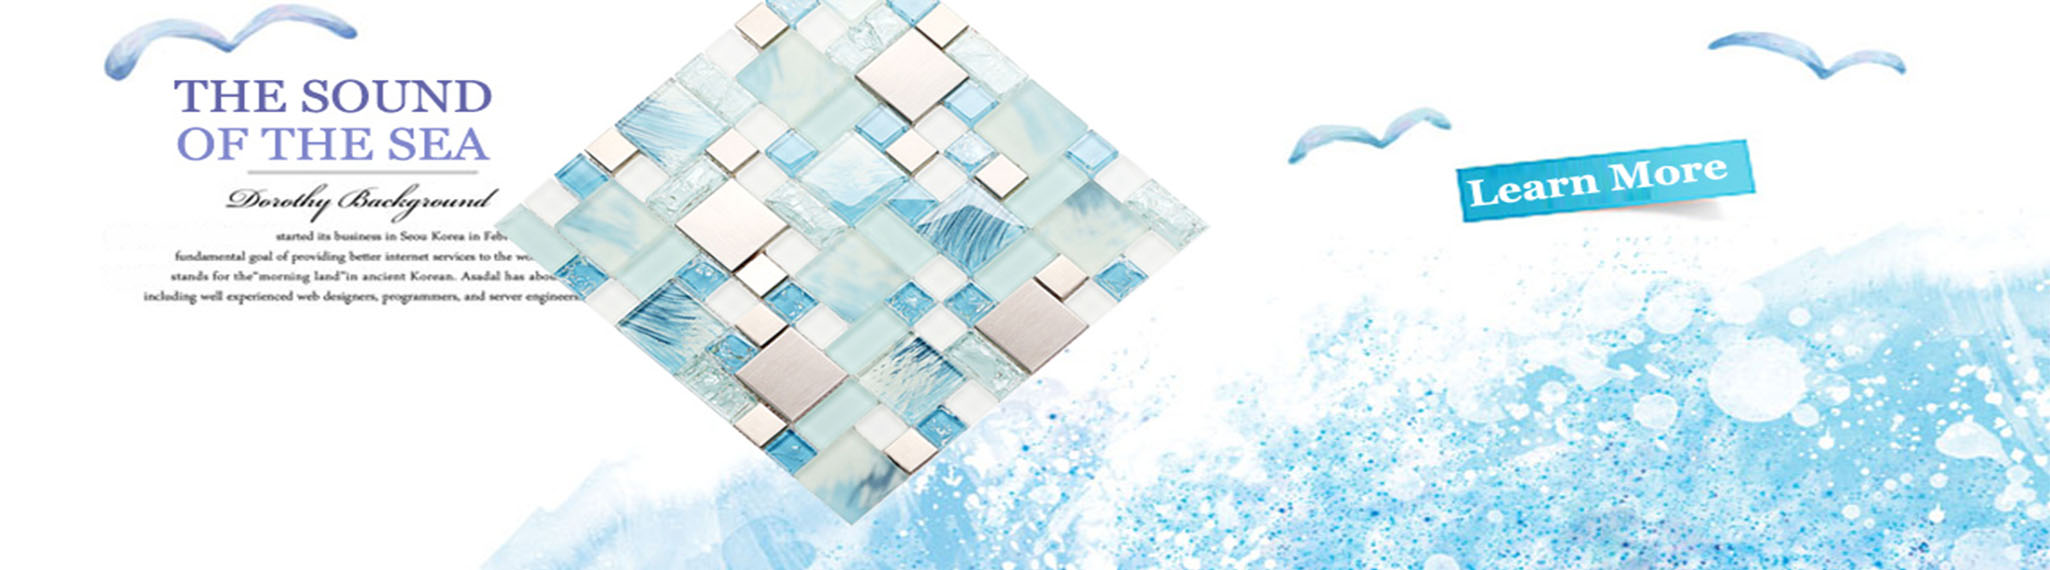 Cyan Glass Tile Silver Stainless Steel Crystal Backsplash